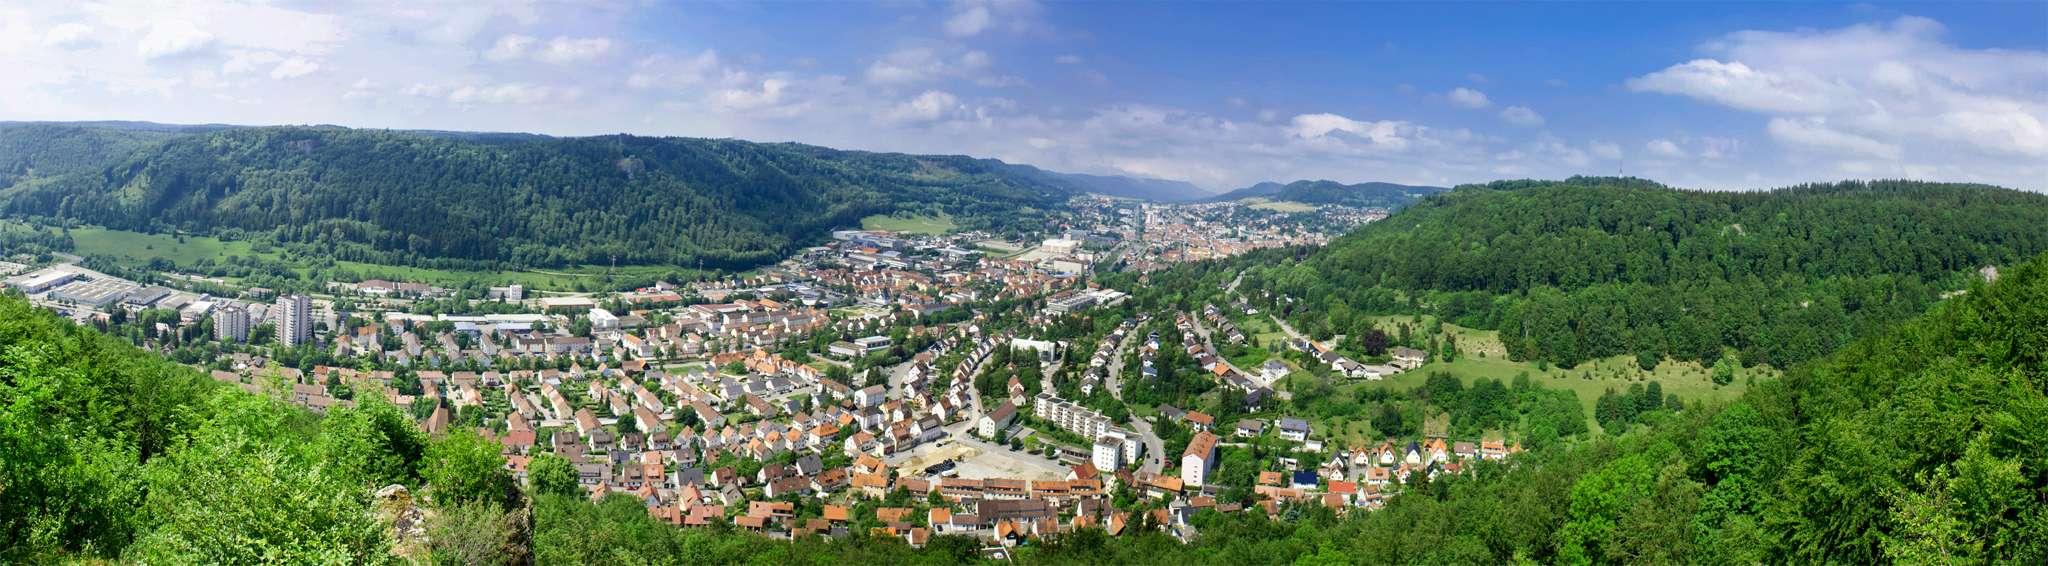 http://upload.wikimedia.org/wikipedia/commons/f/f6/20110602-Albstadt_Panorama.jpg